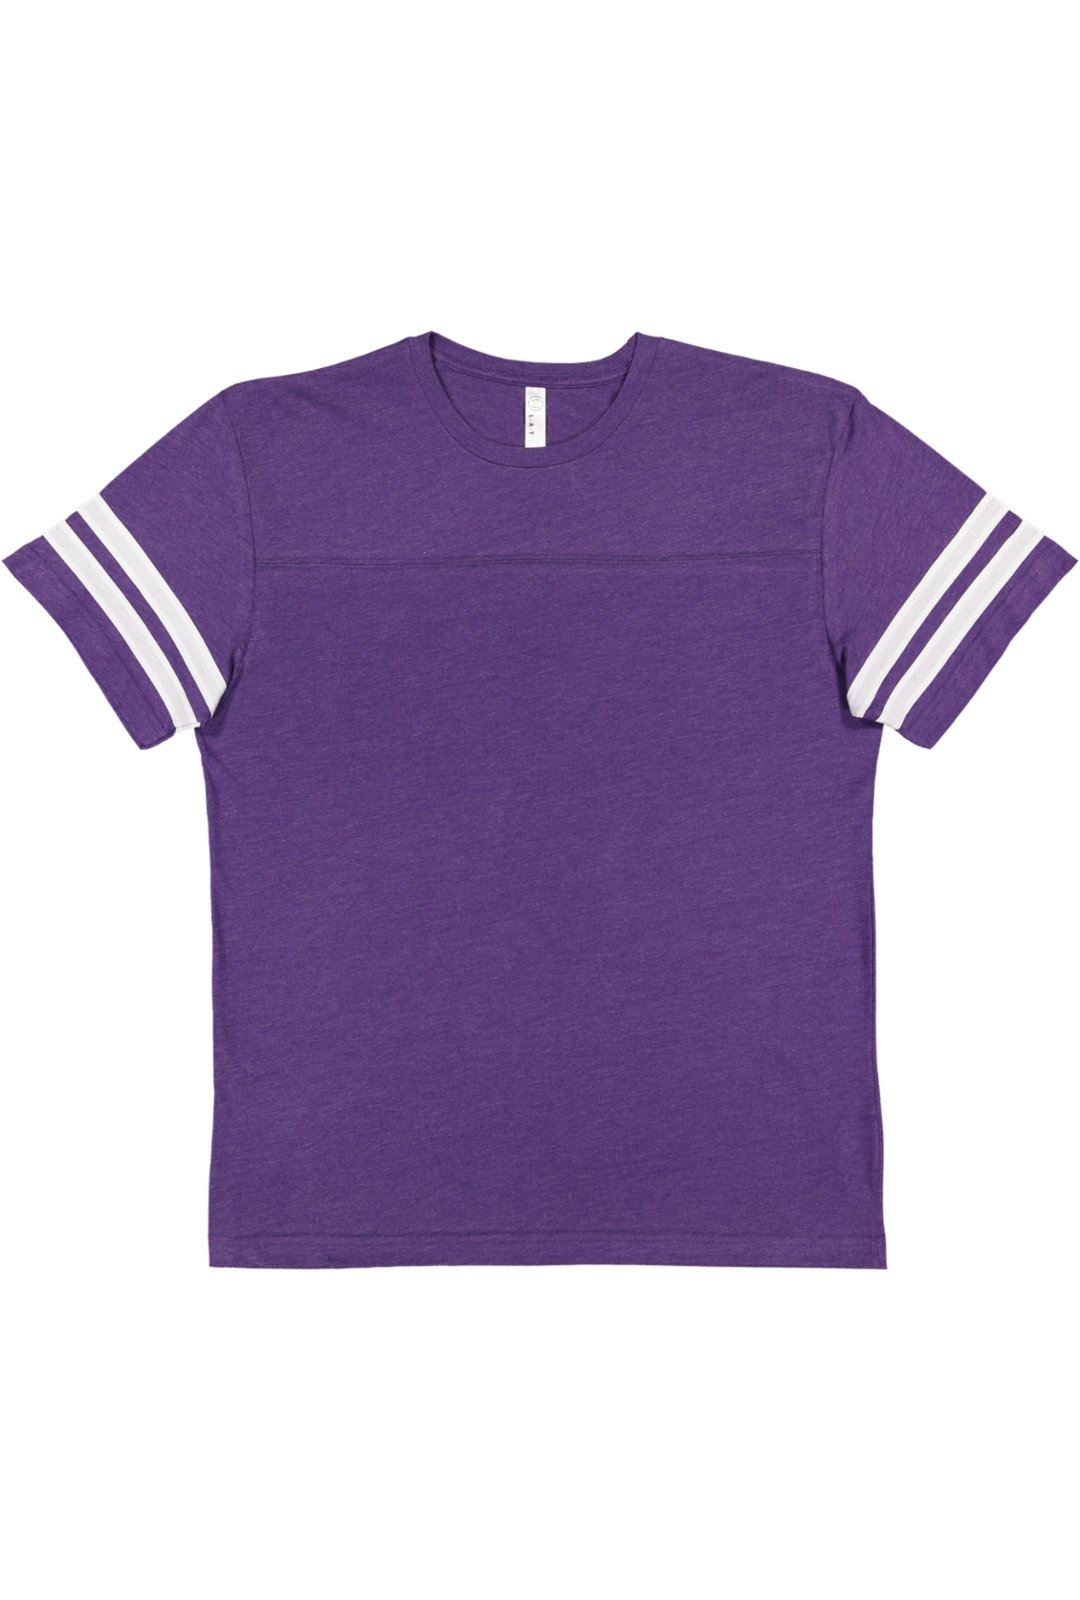 LAT Men's Fine Jersey Crew Neck Short Sleeve Football Tee (Vintage Purple/Blended White, Xtra Large) by LAT (Image #2)